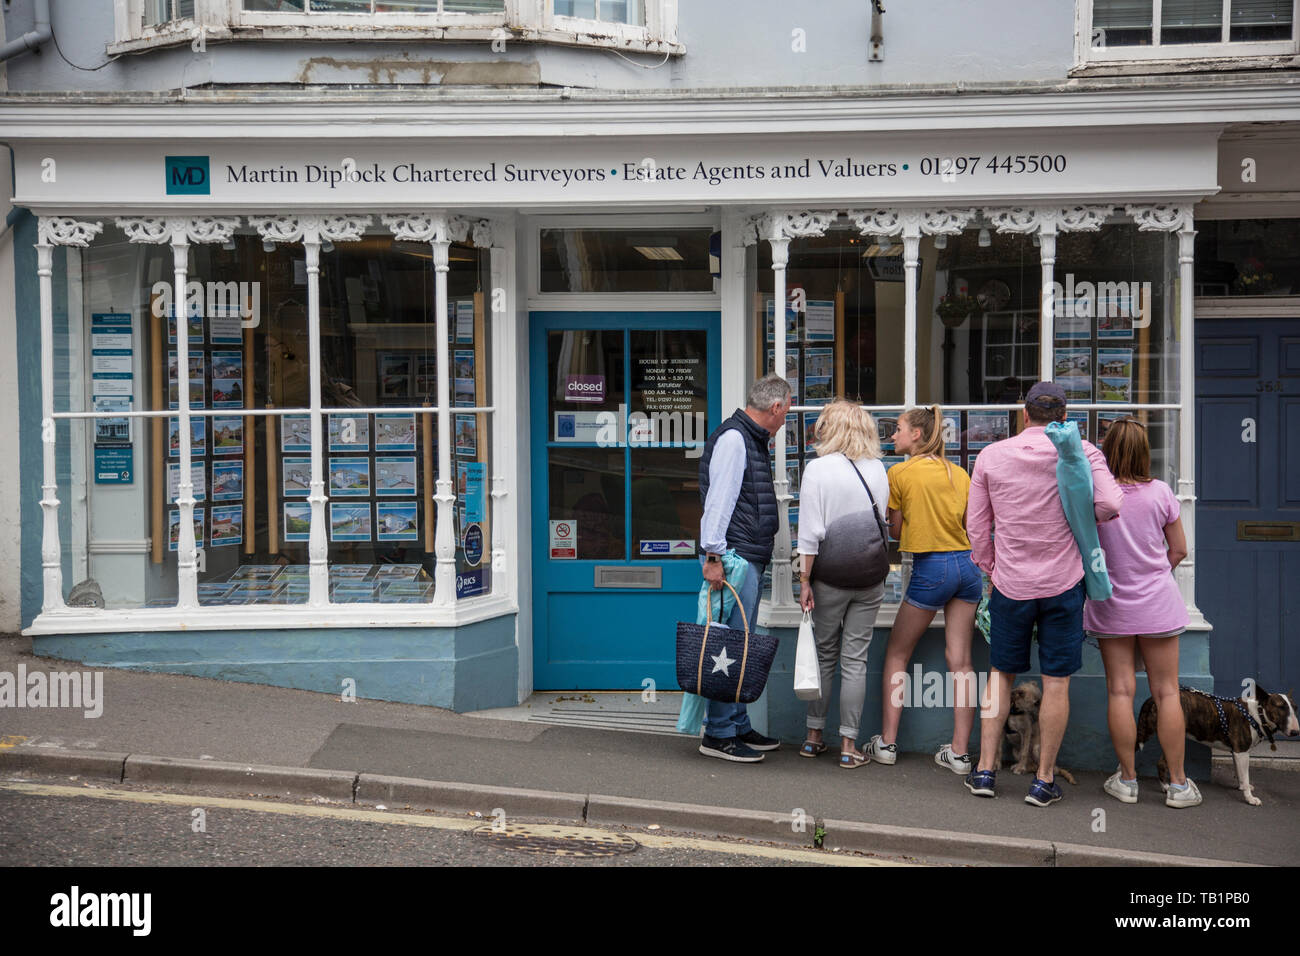 Family looking at properties for sale advertised in an estate agent window in West Dorset, England, United Kingdom Stock Photo